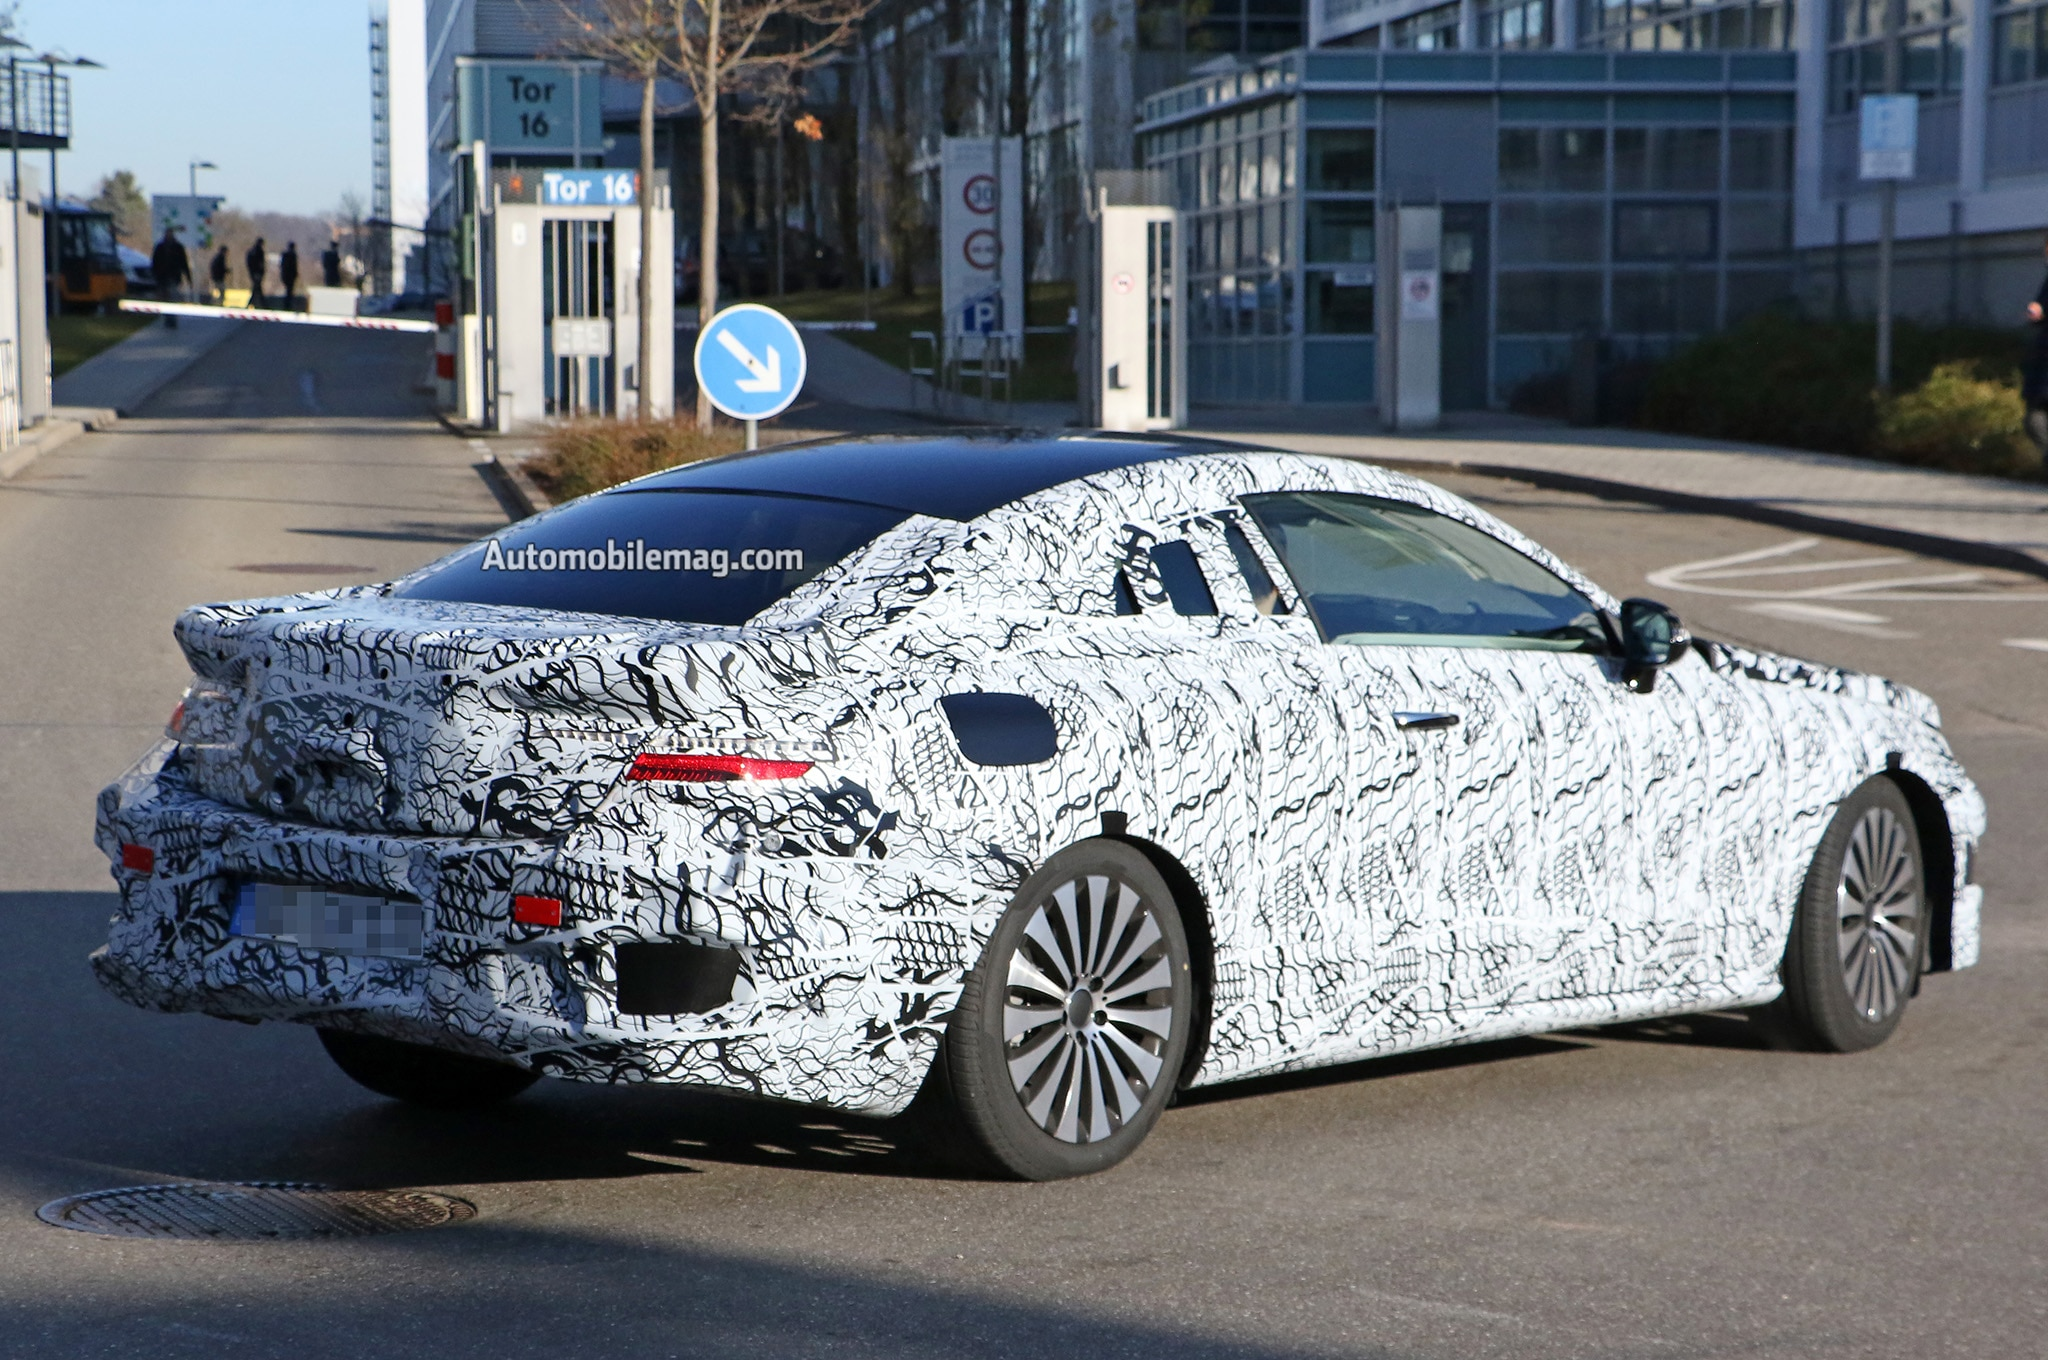 2017 mercedes benz e class coupe spied with rakish roofline for New mercedes benz e class coupe 2017